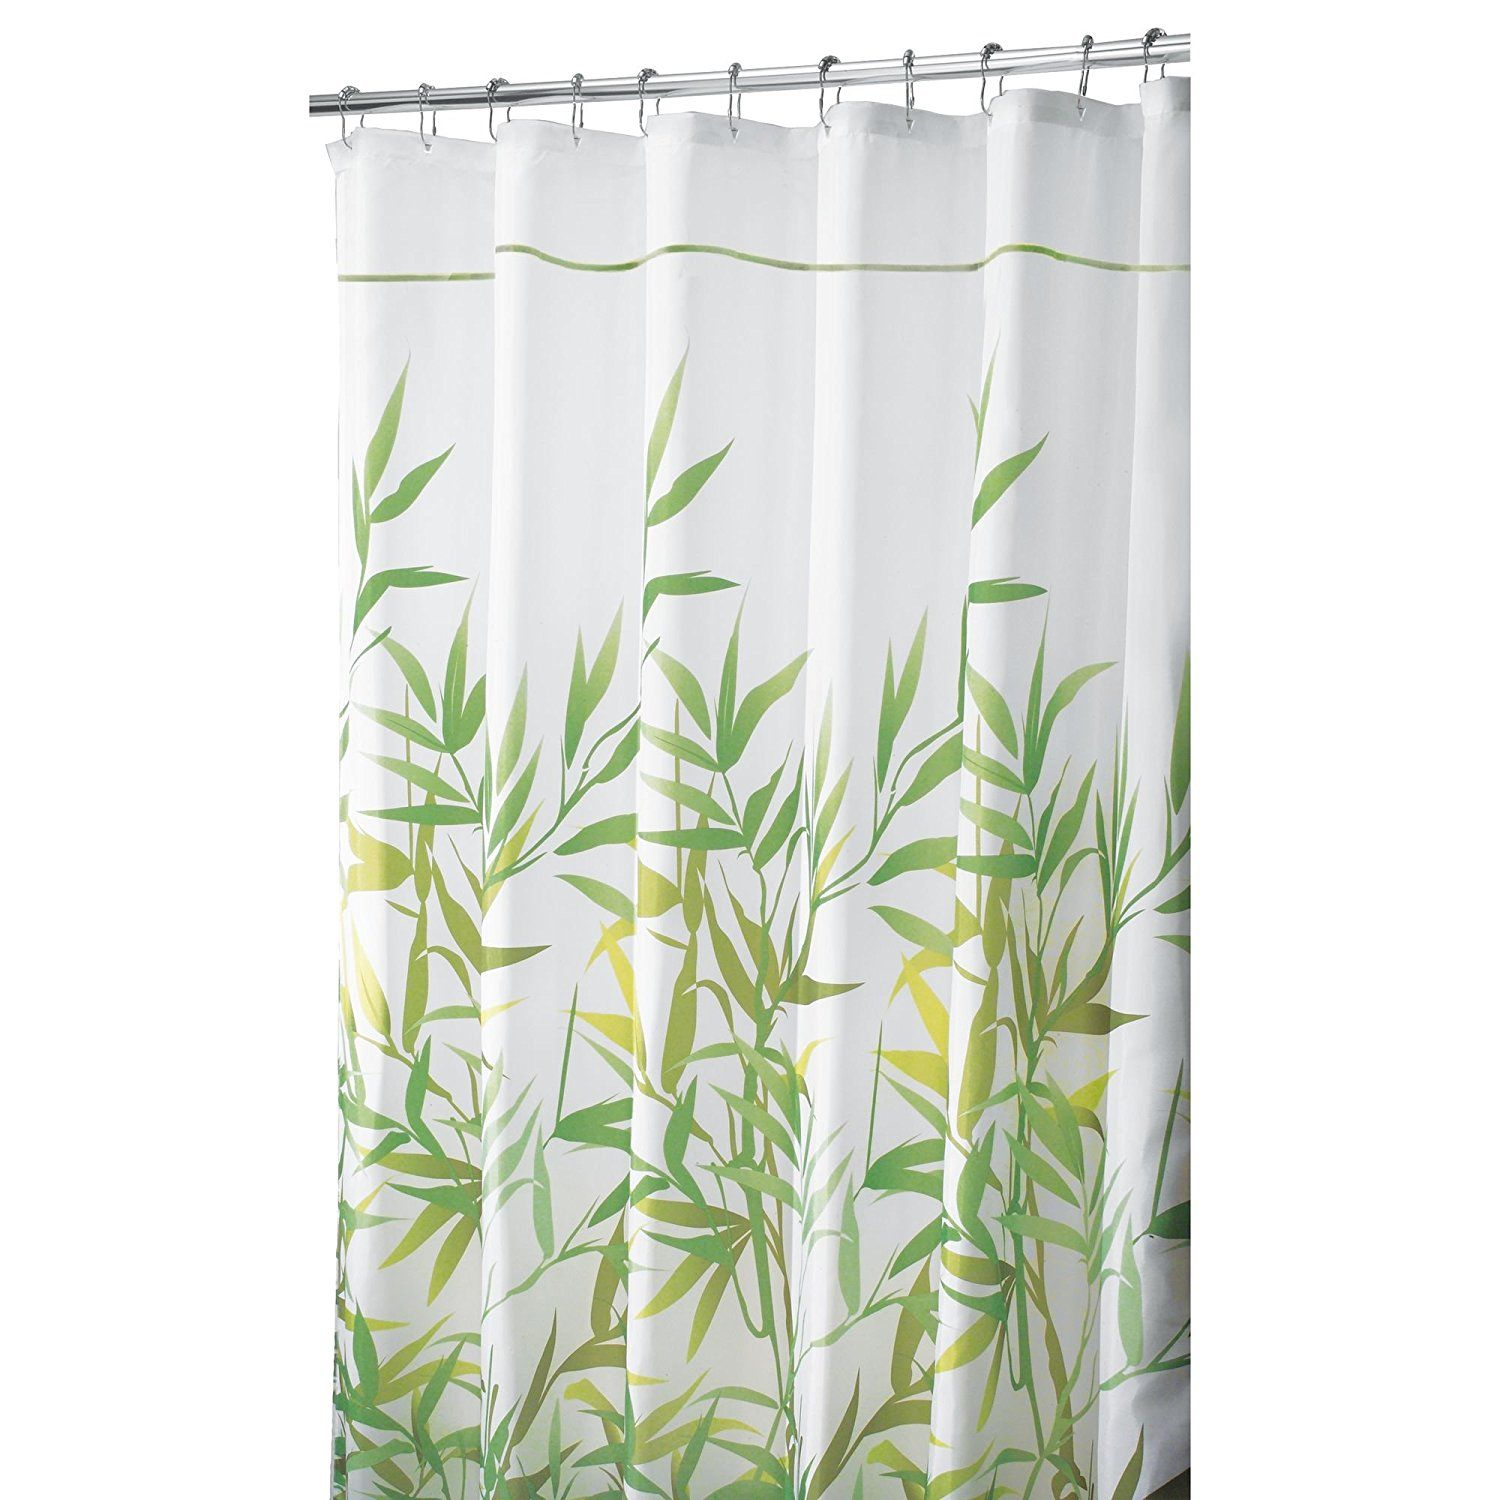 Amazon Cortinas Baño Mdesign Cortina De Baño Antimoho 180 Cm X 200 Cm Cortina Ducha